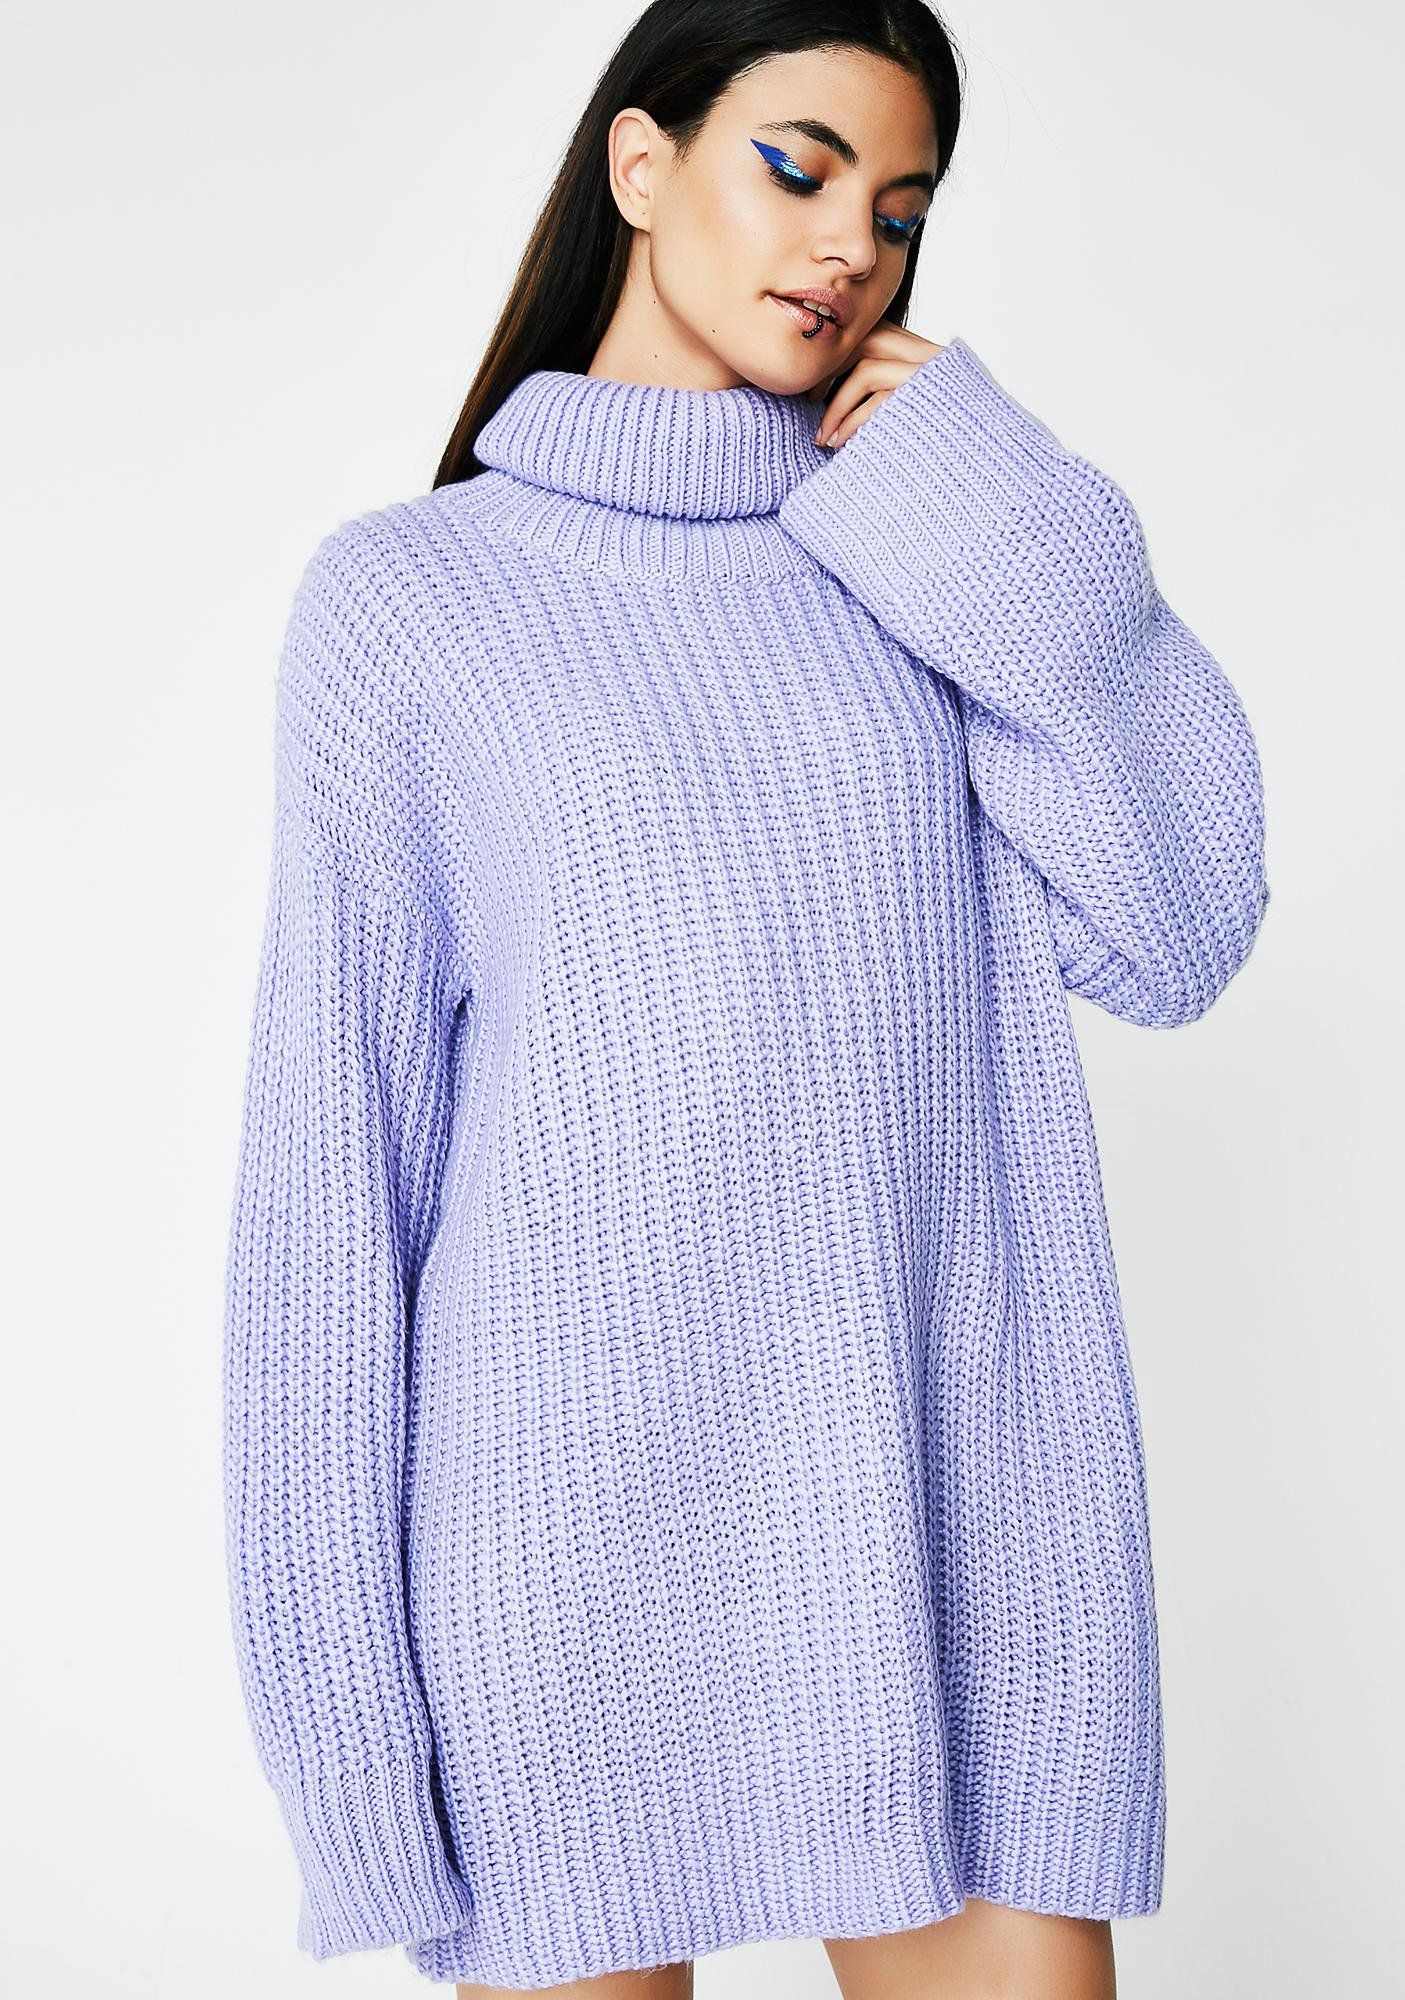 d695a651aa0f Lavender Gray Skies Sweater Dress cuz you re always lookin  good… rain or  shine! This lavender sweater dress has a turtleneck with a mini fit.